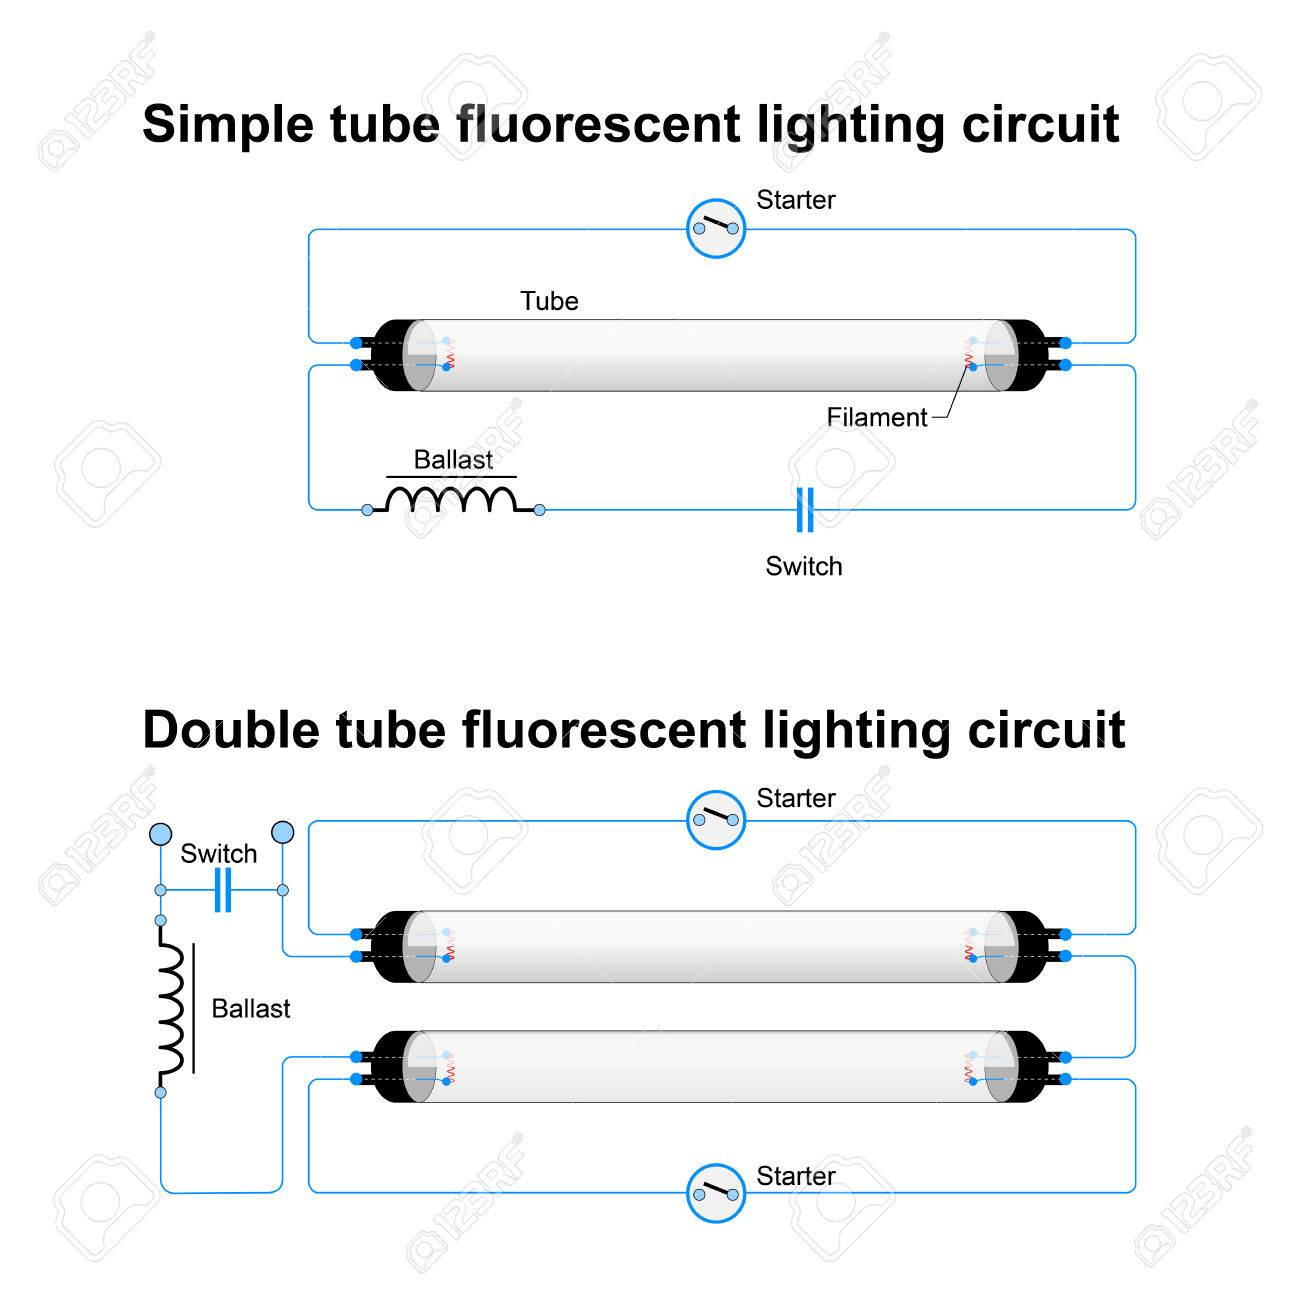 Surprising Fluorescent Light Fixture Wiring Help Needed Ar15Com Diagram Data Wiring Cloud Usnesfoxcilixyz